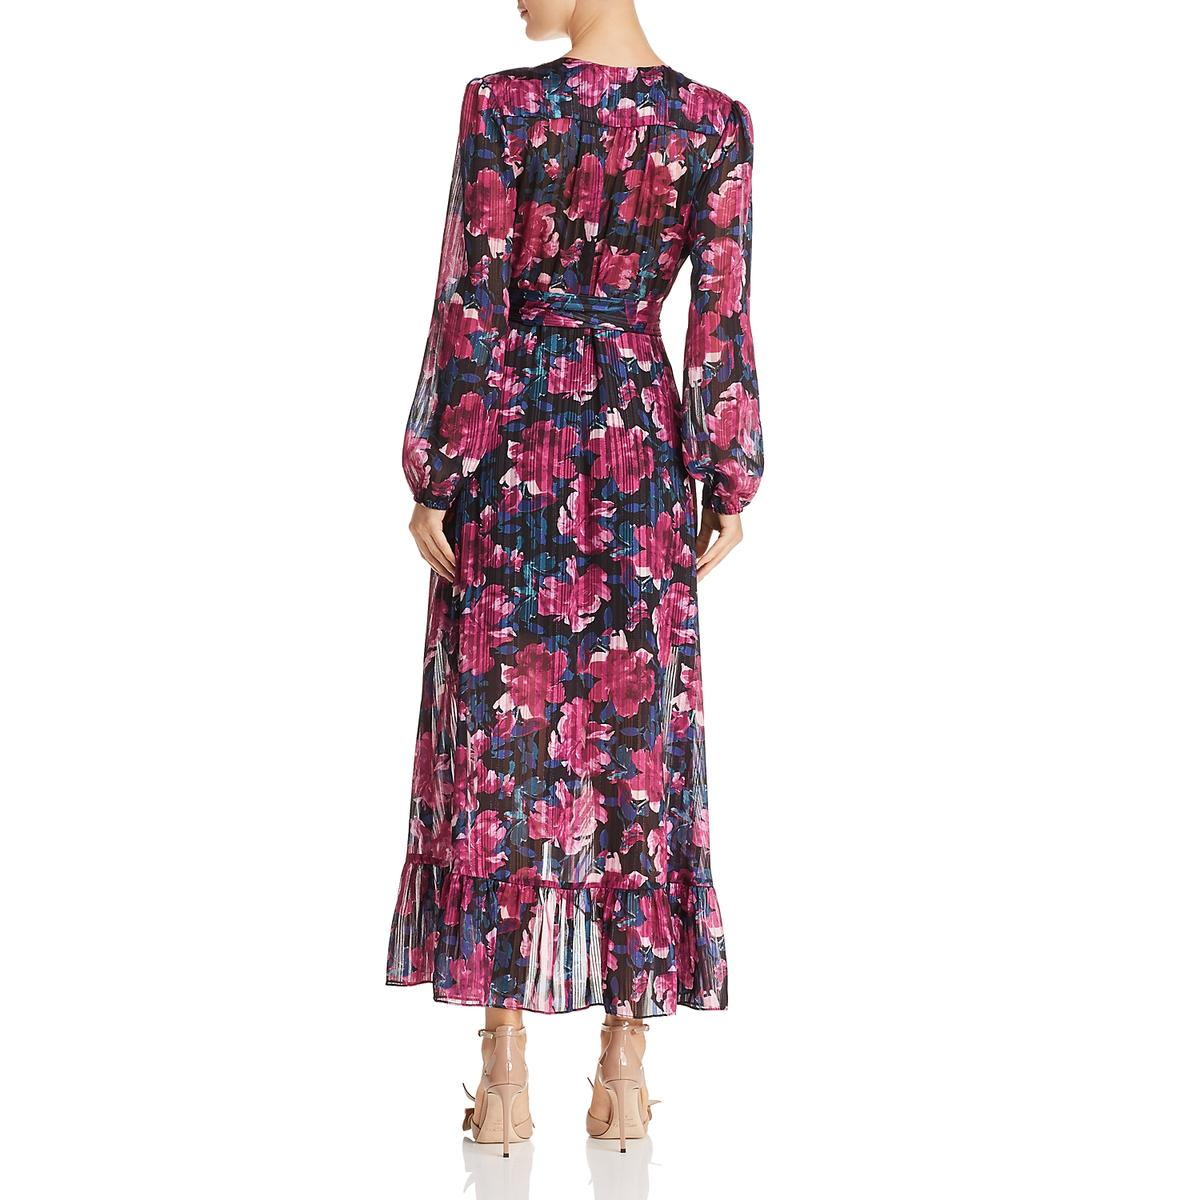 WAYF Womens Only You Wrap Floral Party Maxi Dress BHFO 5254